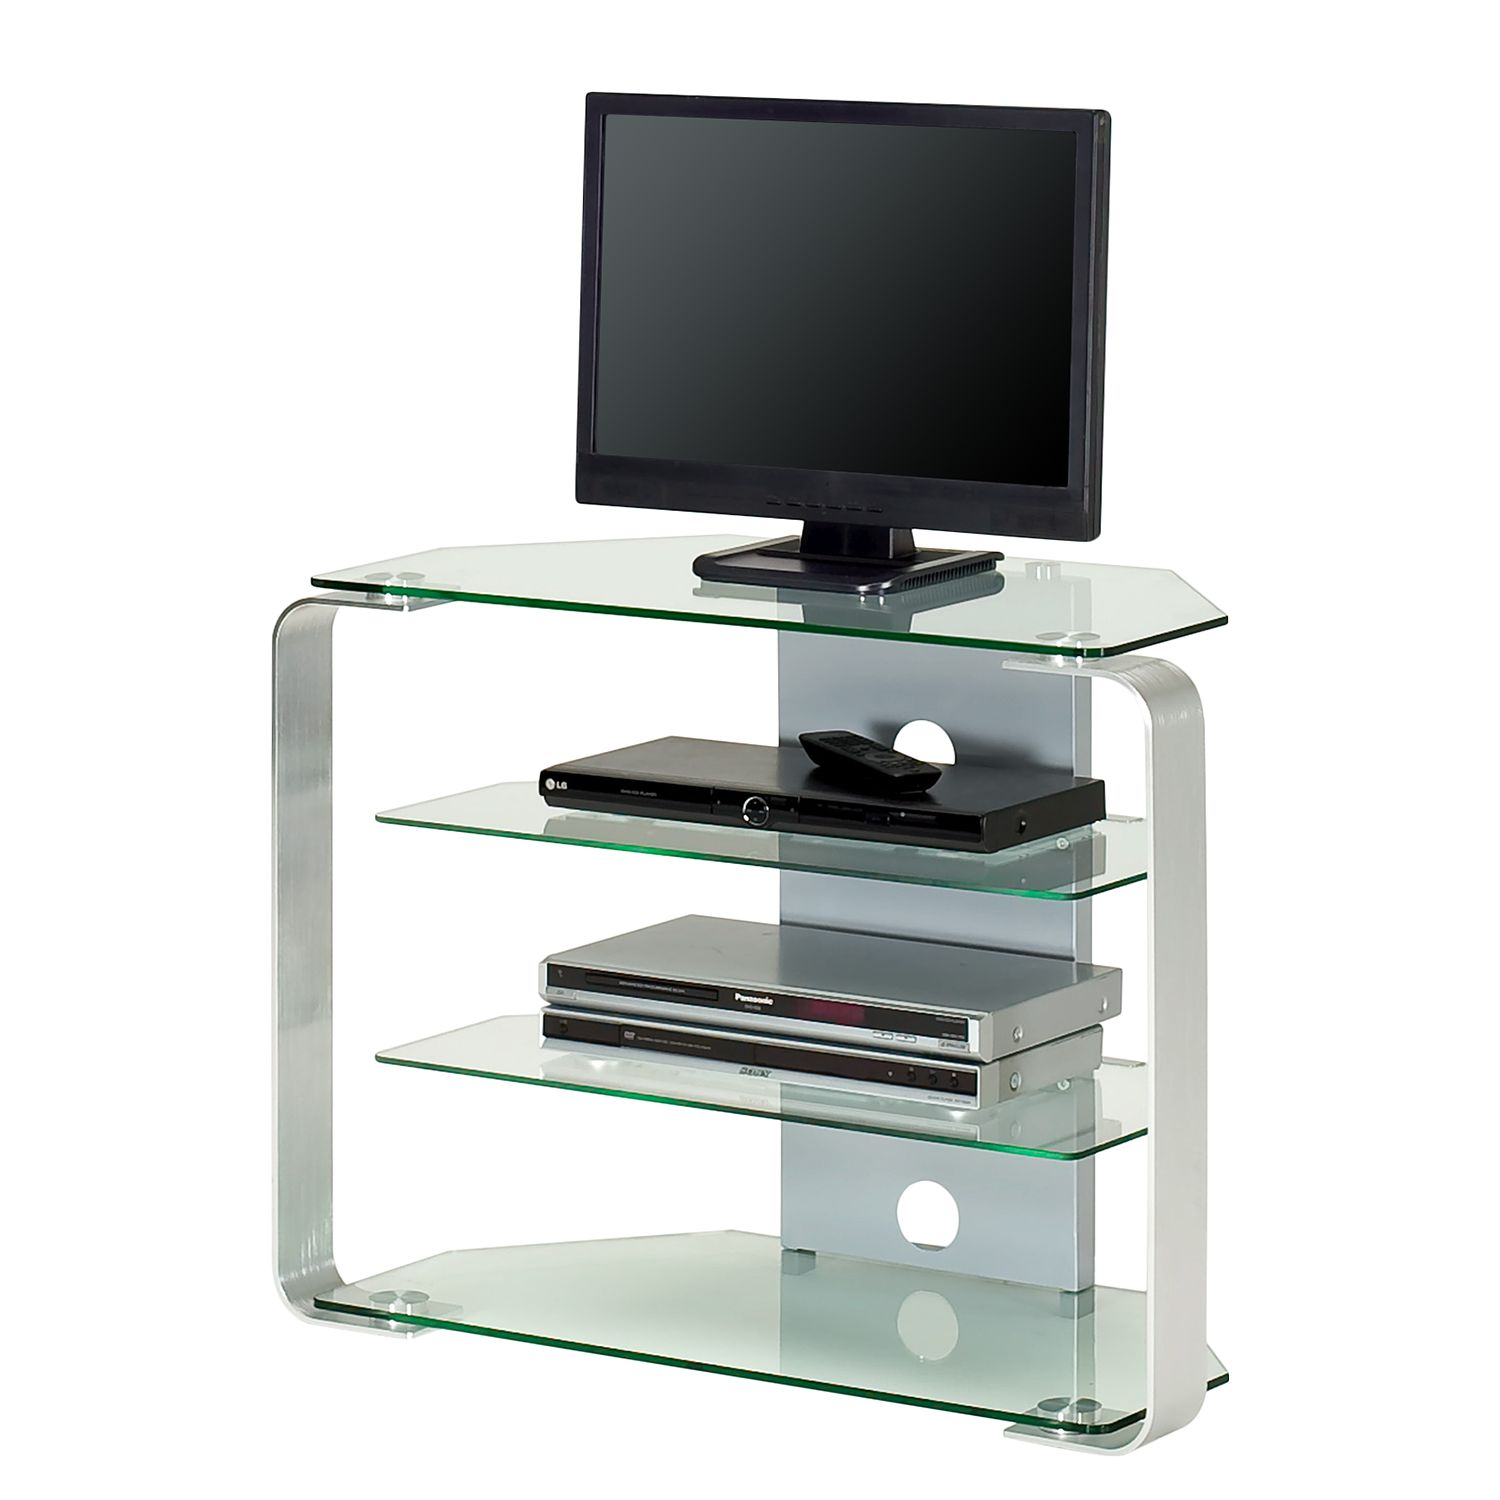 jahnke tv mobel katalog TV-Rack CU-MR 100 - Glas - Aluminium | home24.at